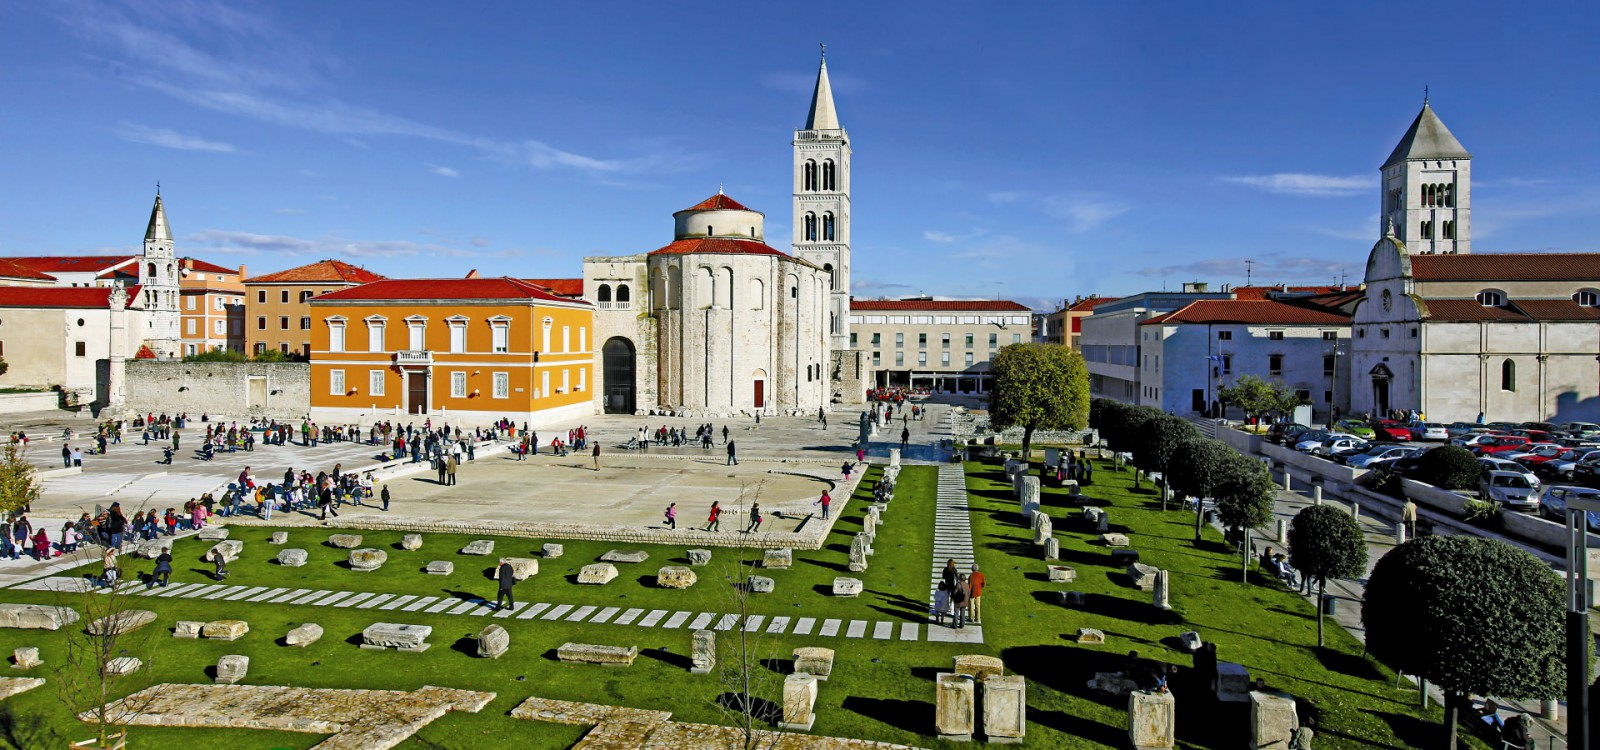 See, Hear, Meet and Experience Zadar